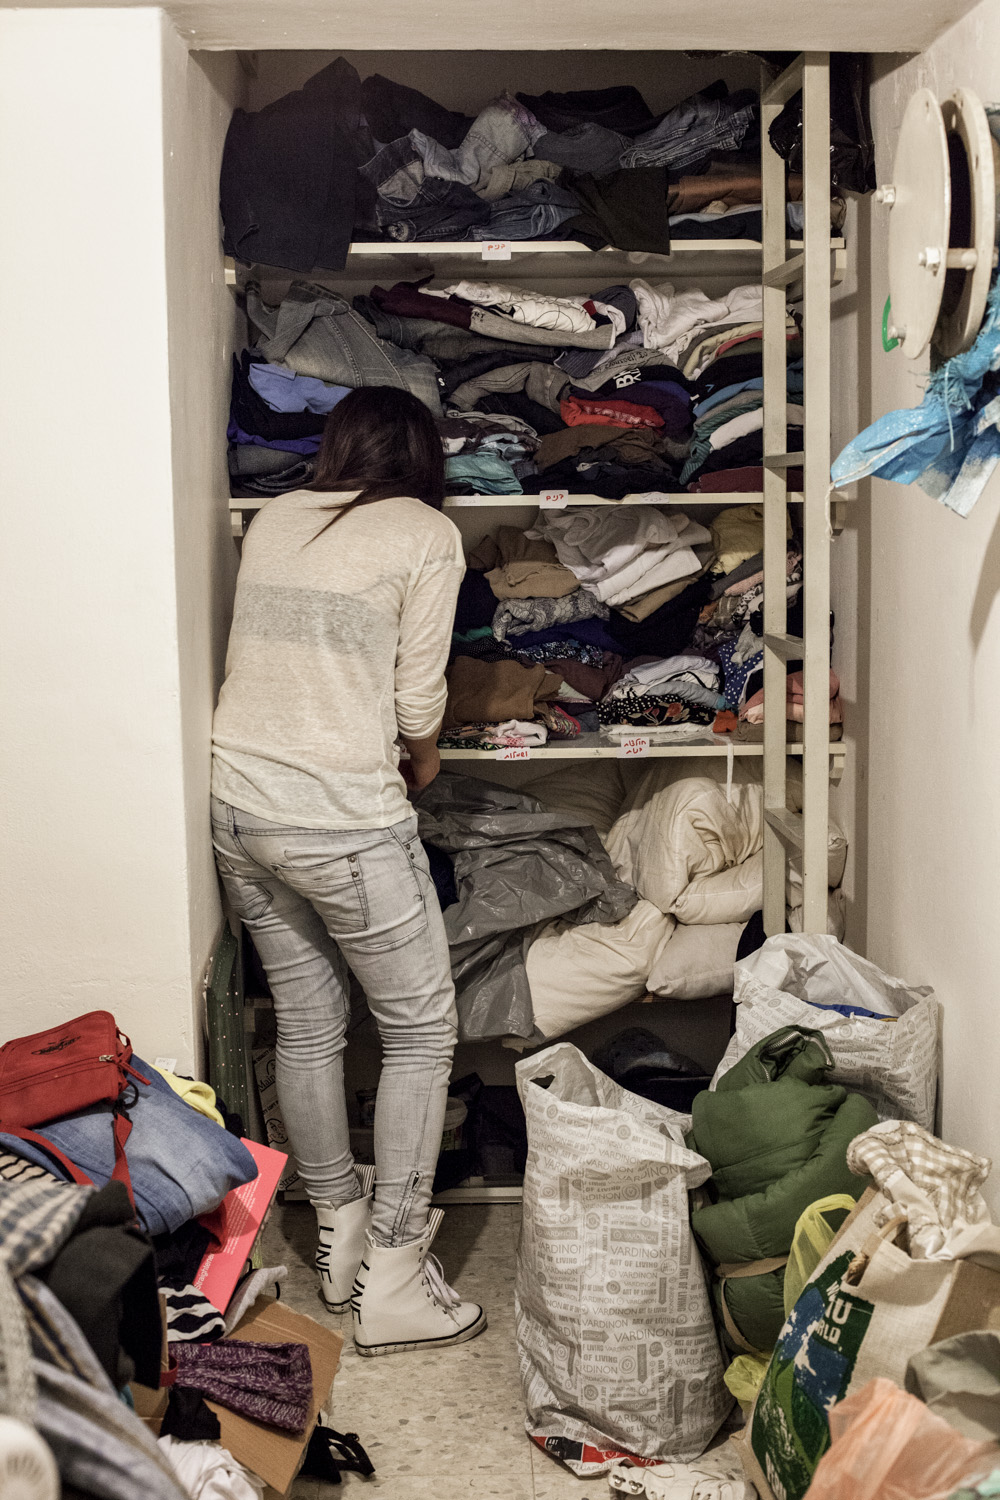 Hillel offers, amongst other things, public clothes donations and accomodation where Yotzim are able to stay for their first few months after leaving.  Hillel shelter apartment, Jerusalem, Februar 2016